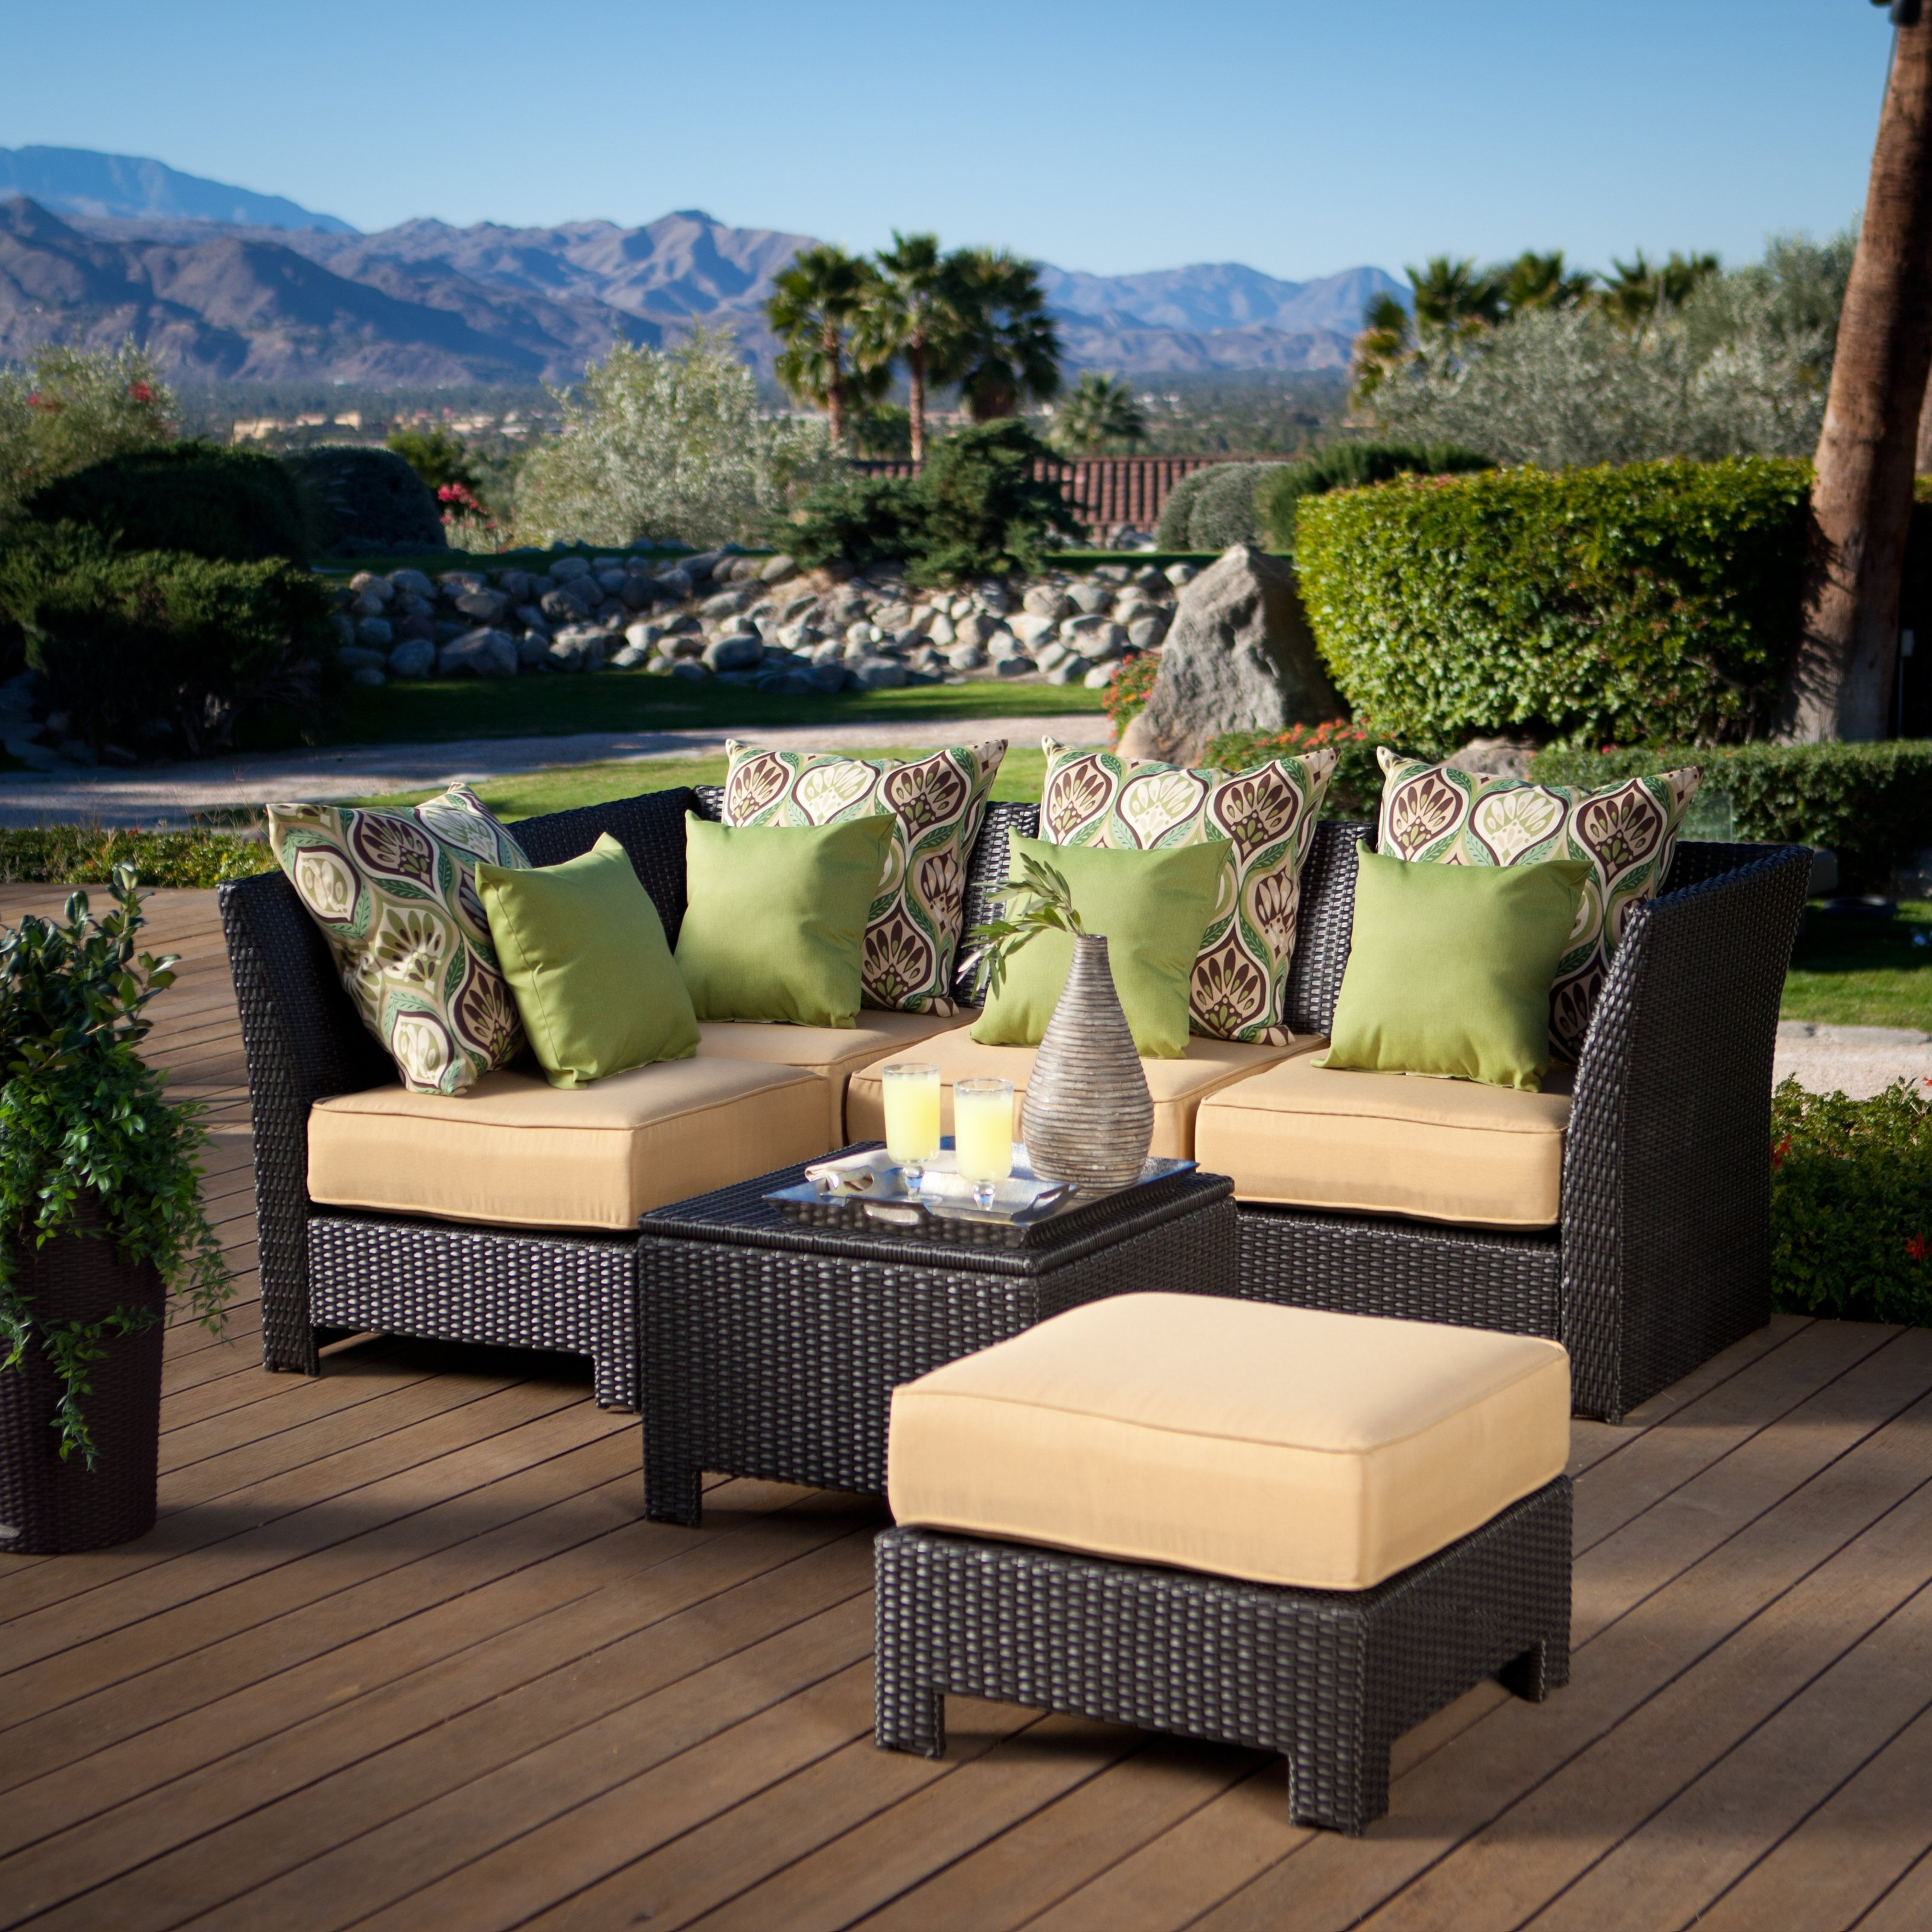 Fashionable Patio Conversation Sets At Target Pertaining To Patio Furniture Target Clearance – Patio Ideas (View 3 of 15)